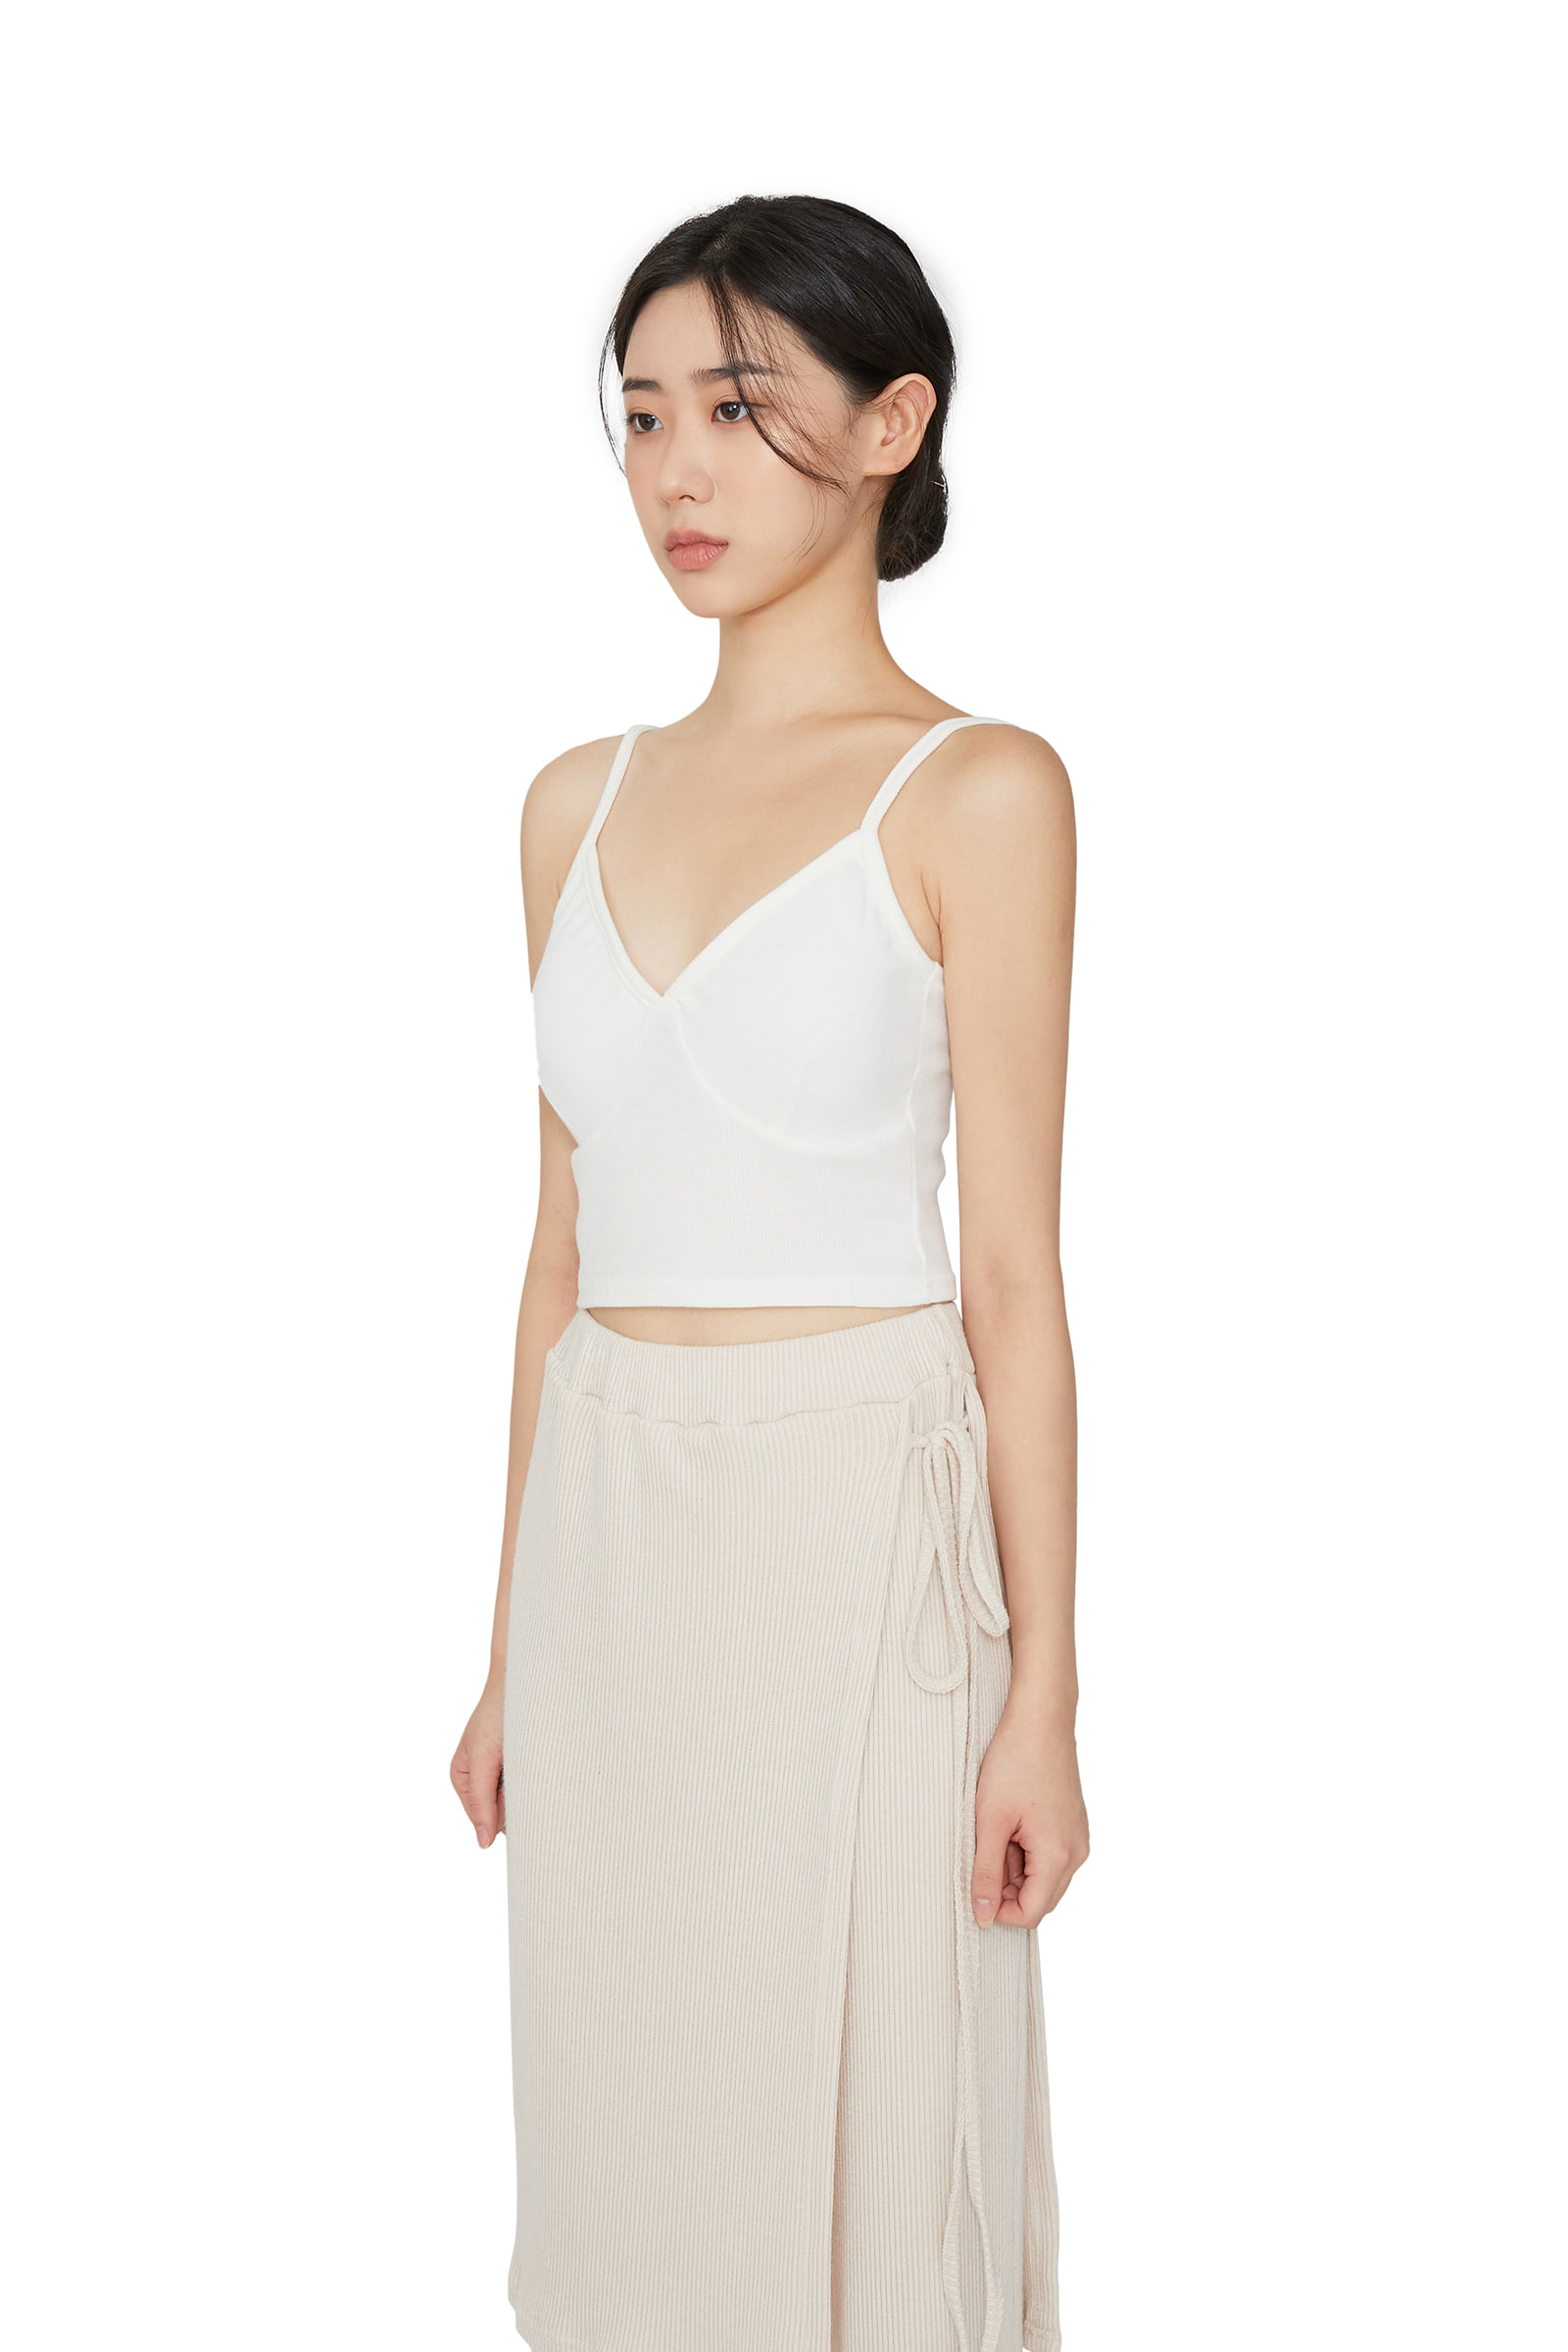 Mort V-neck pad sleeveless